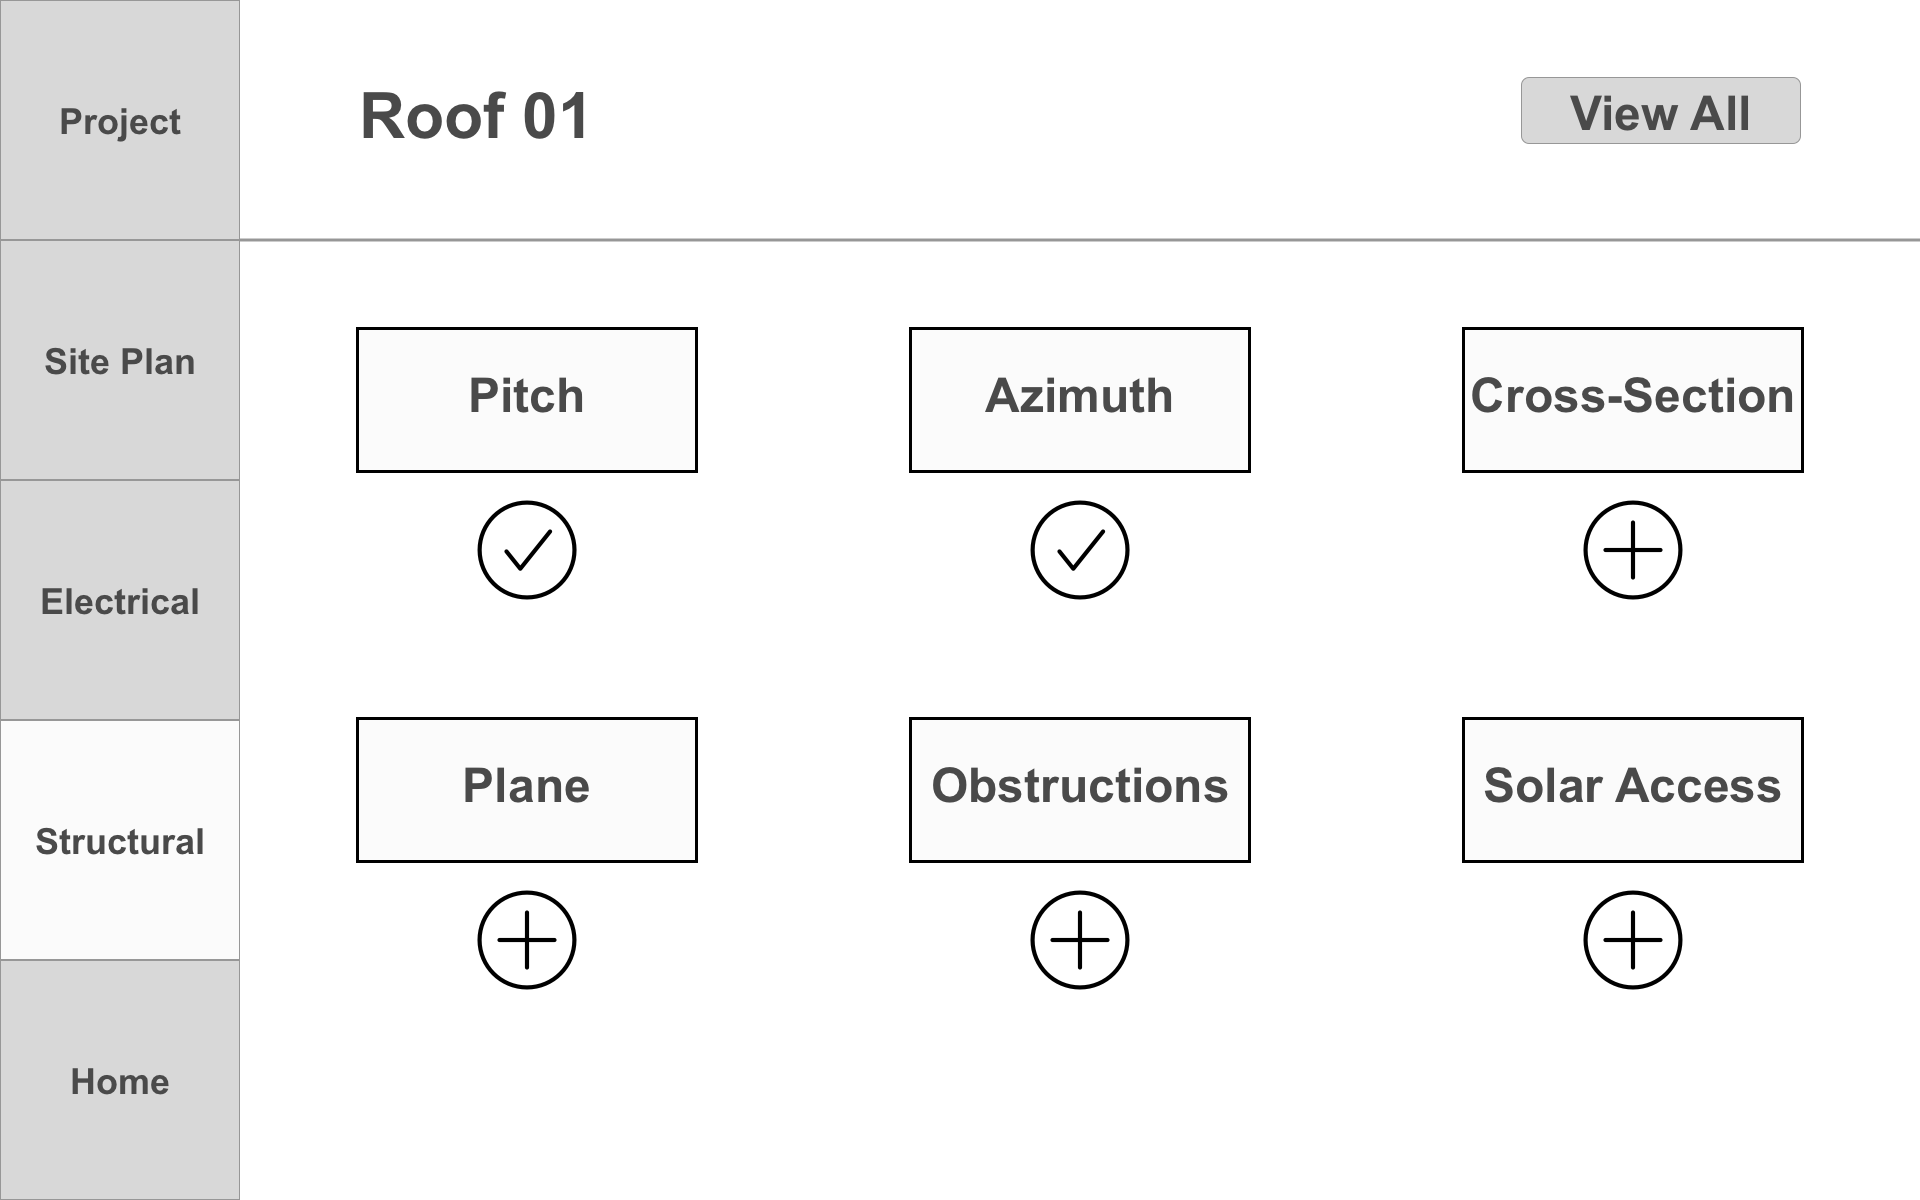 4.0.0_Structural_Roof-Detail Copy.png